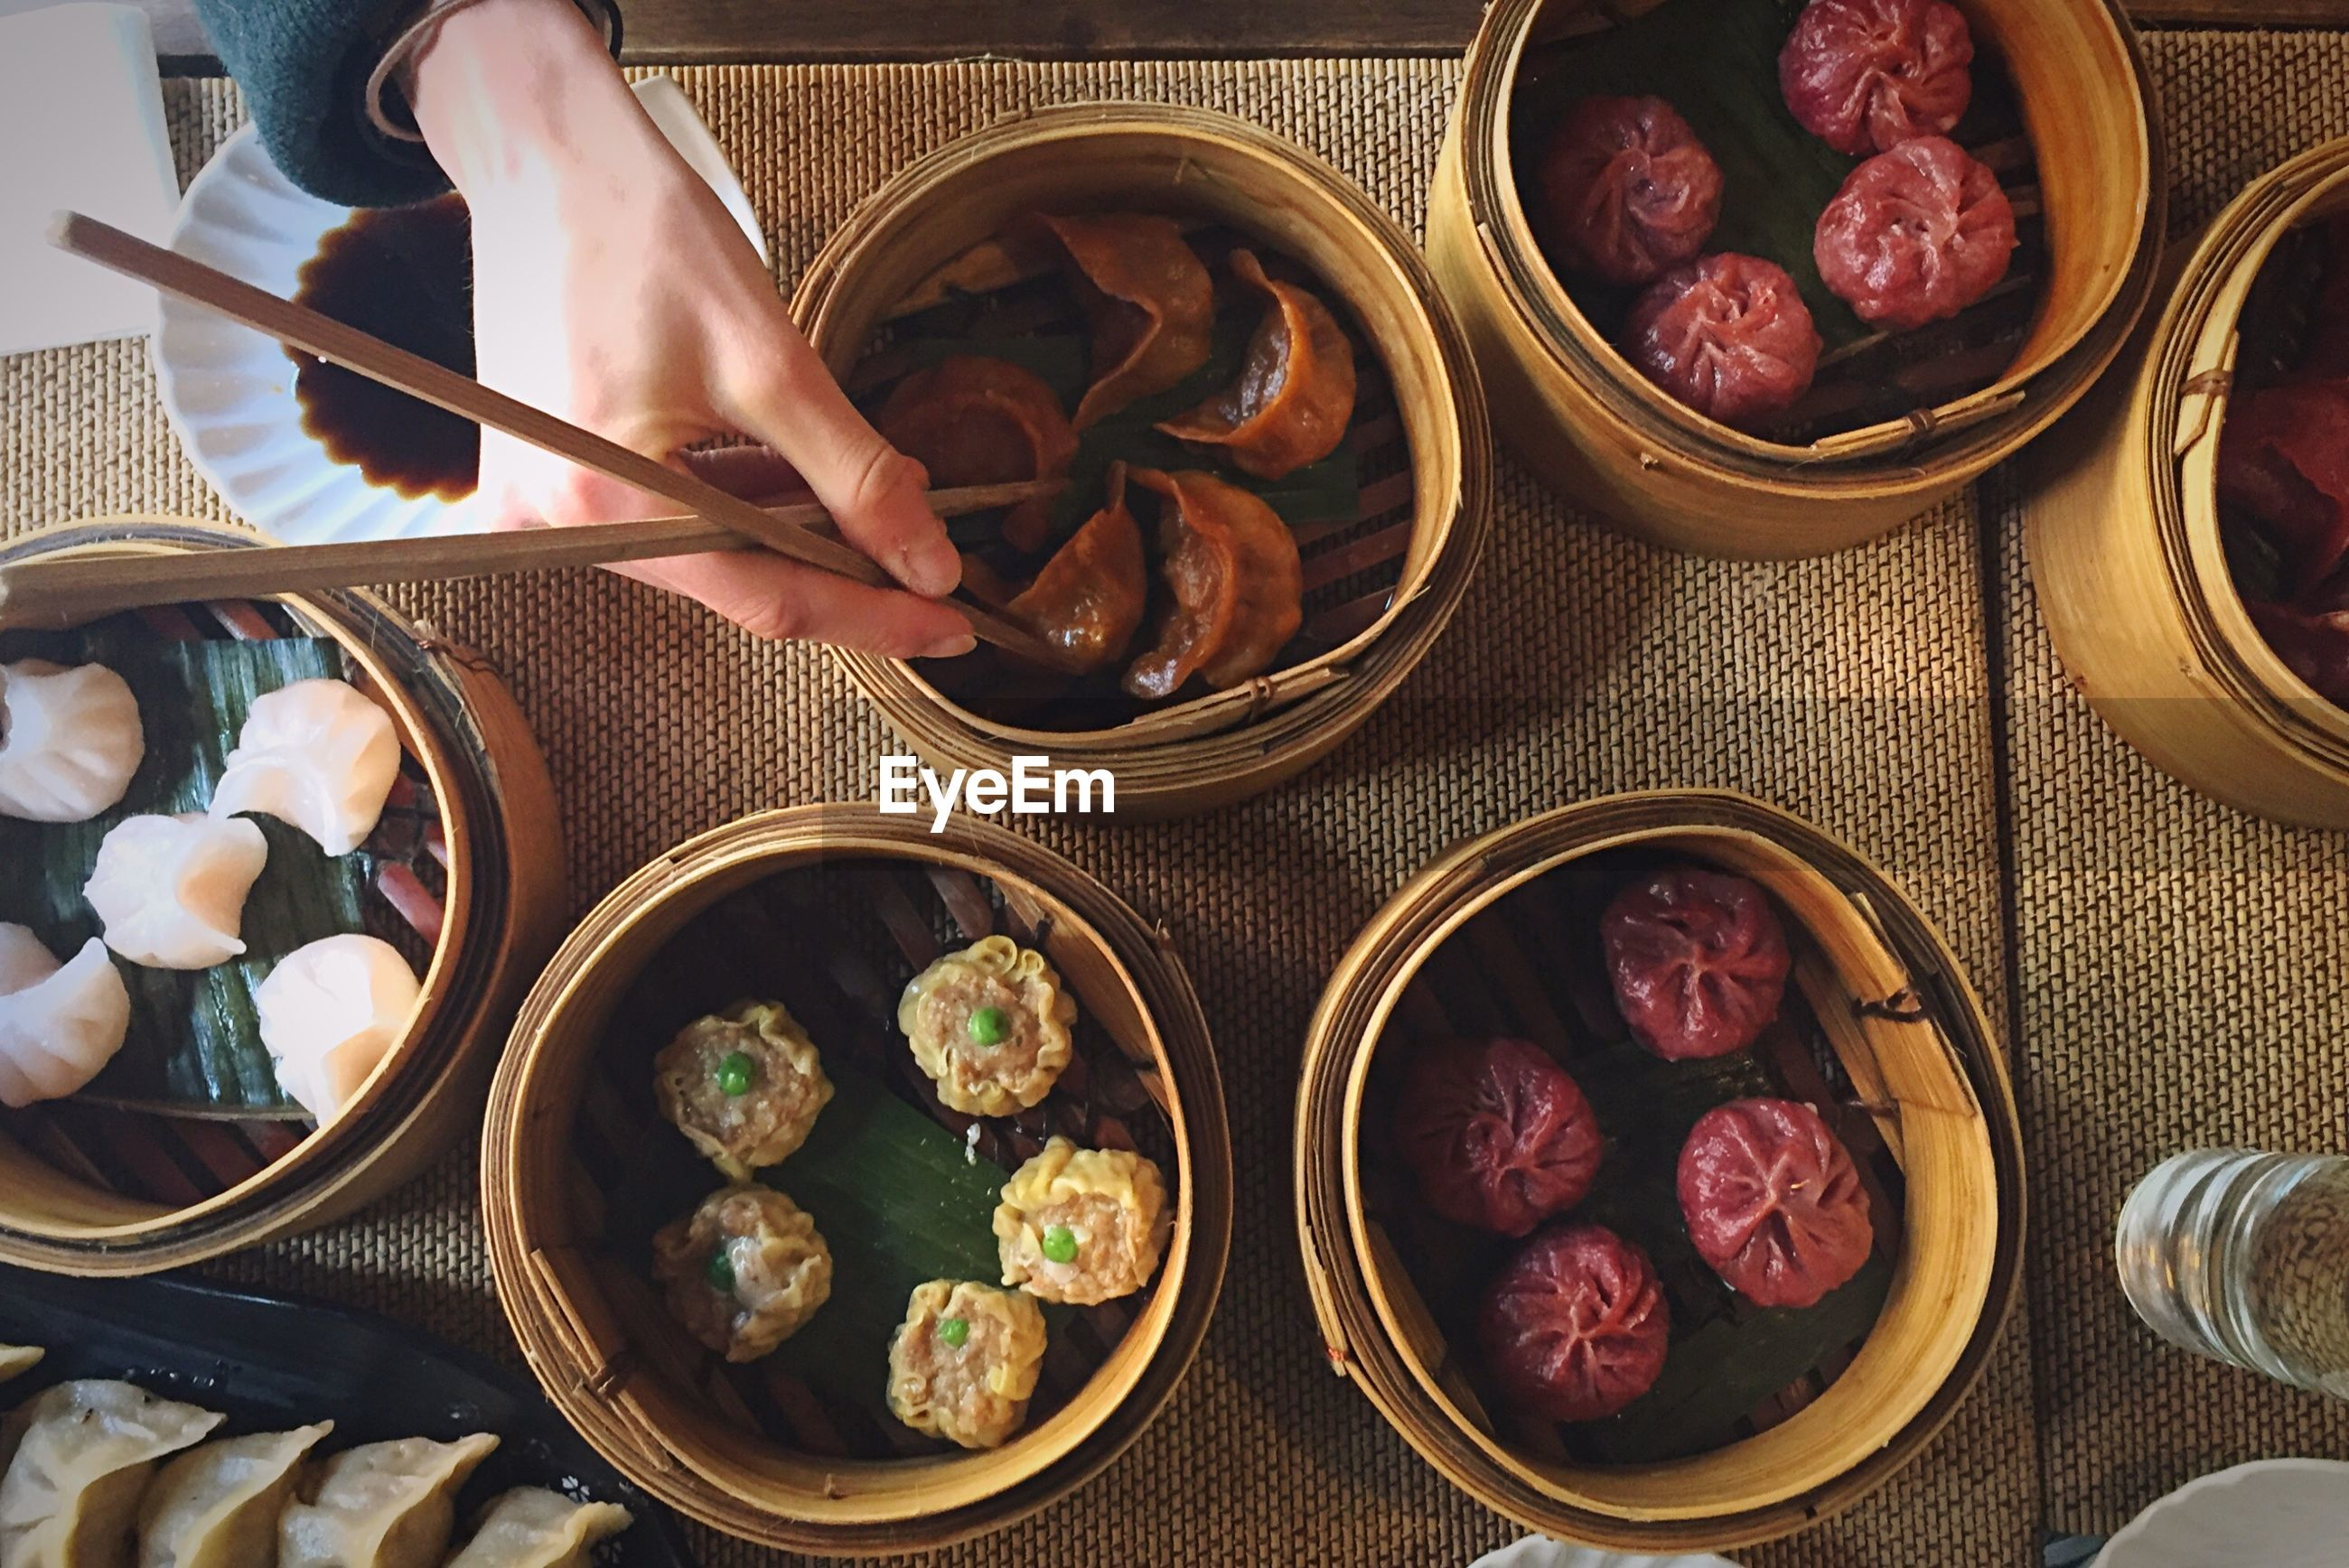 Directly above shot of hand holding food in bamboo steamer